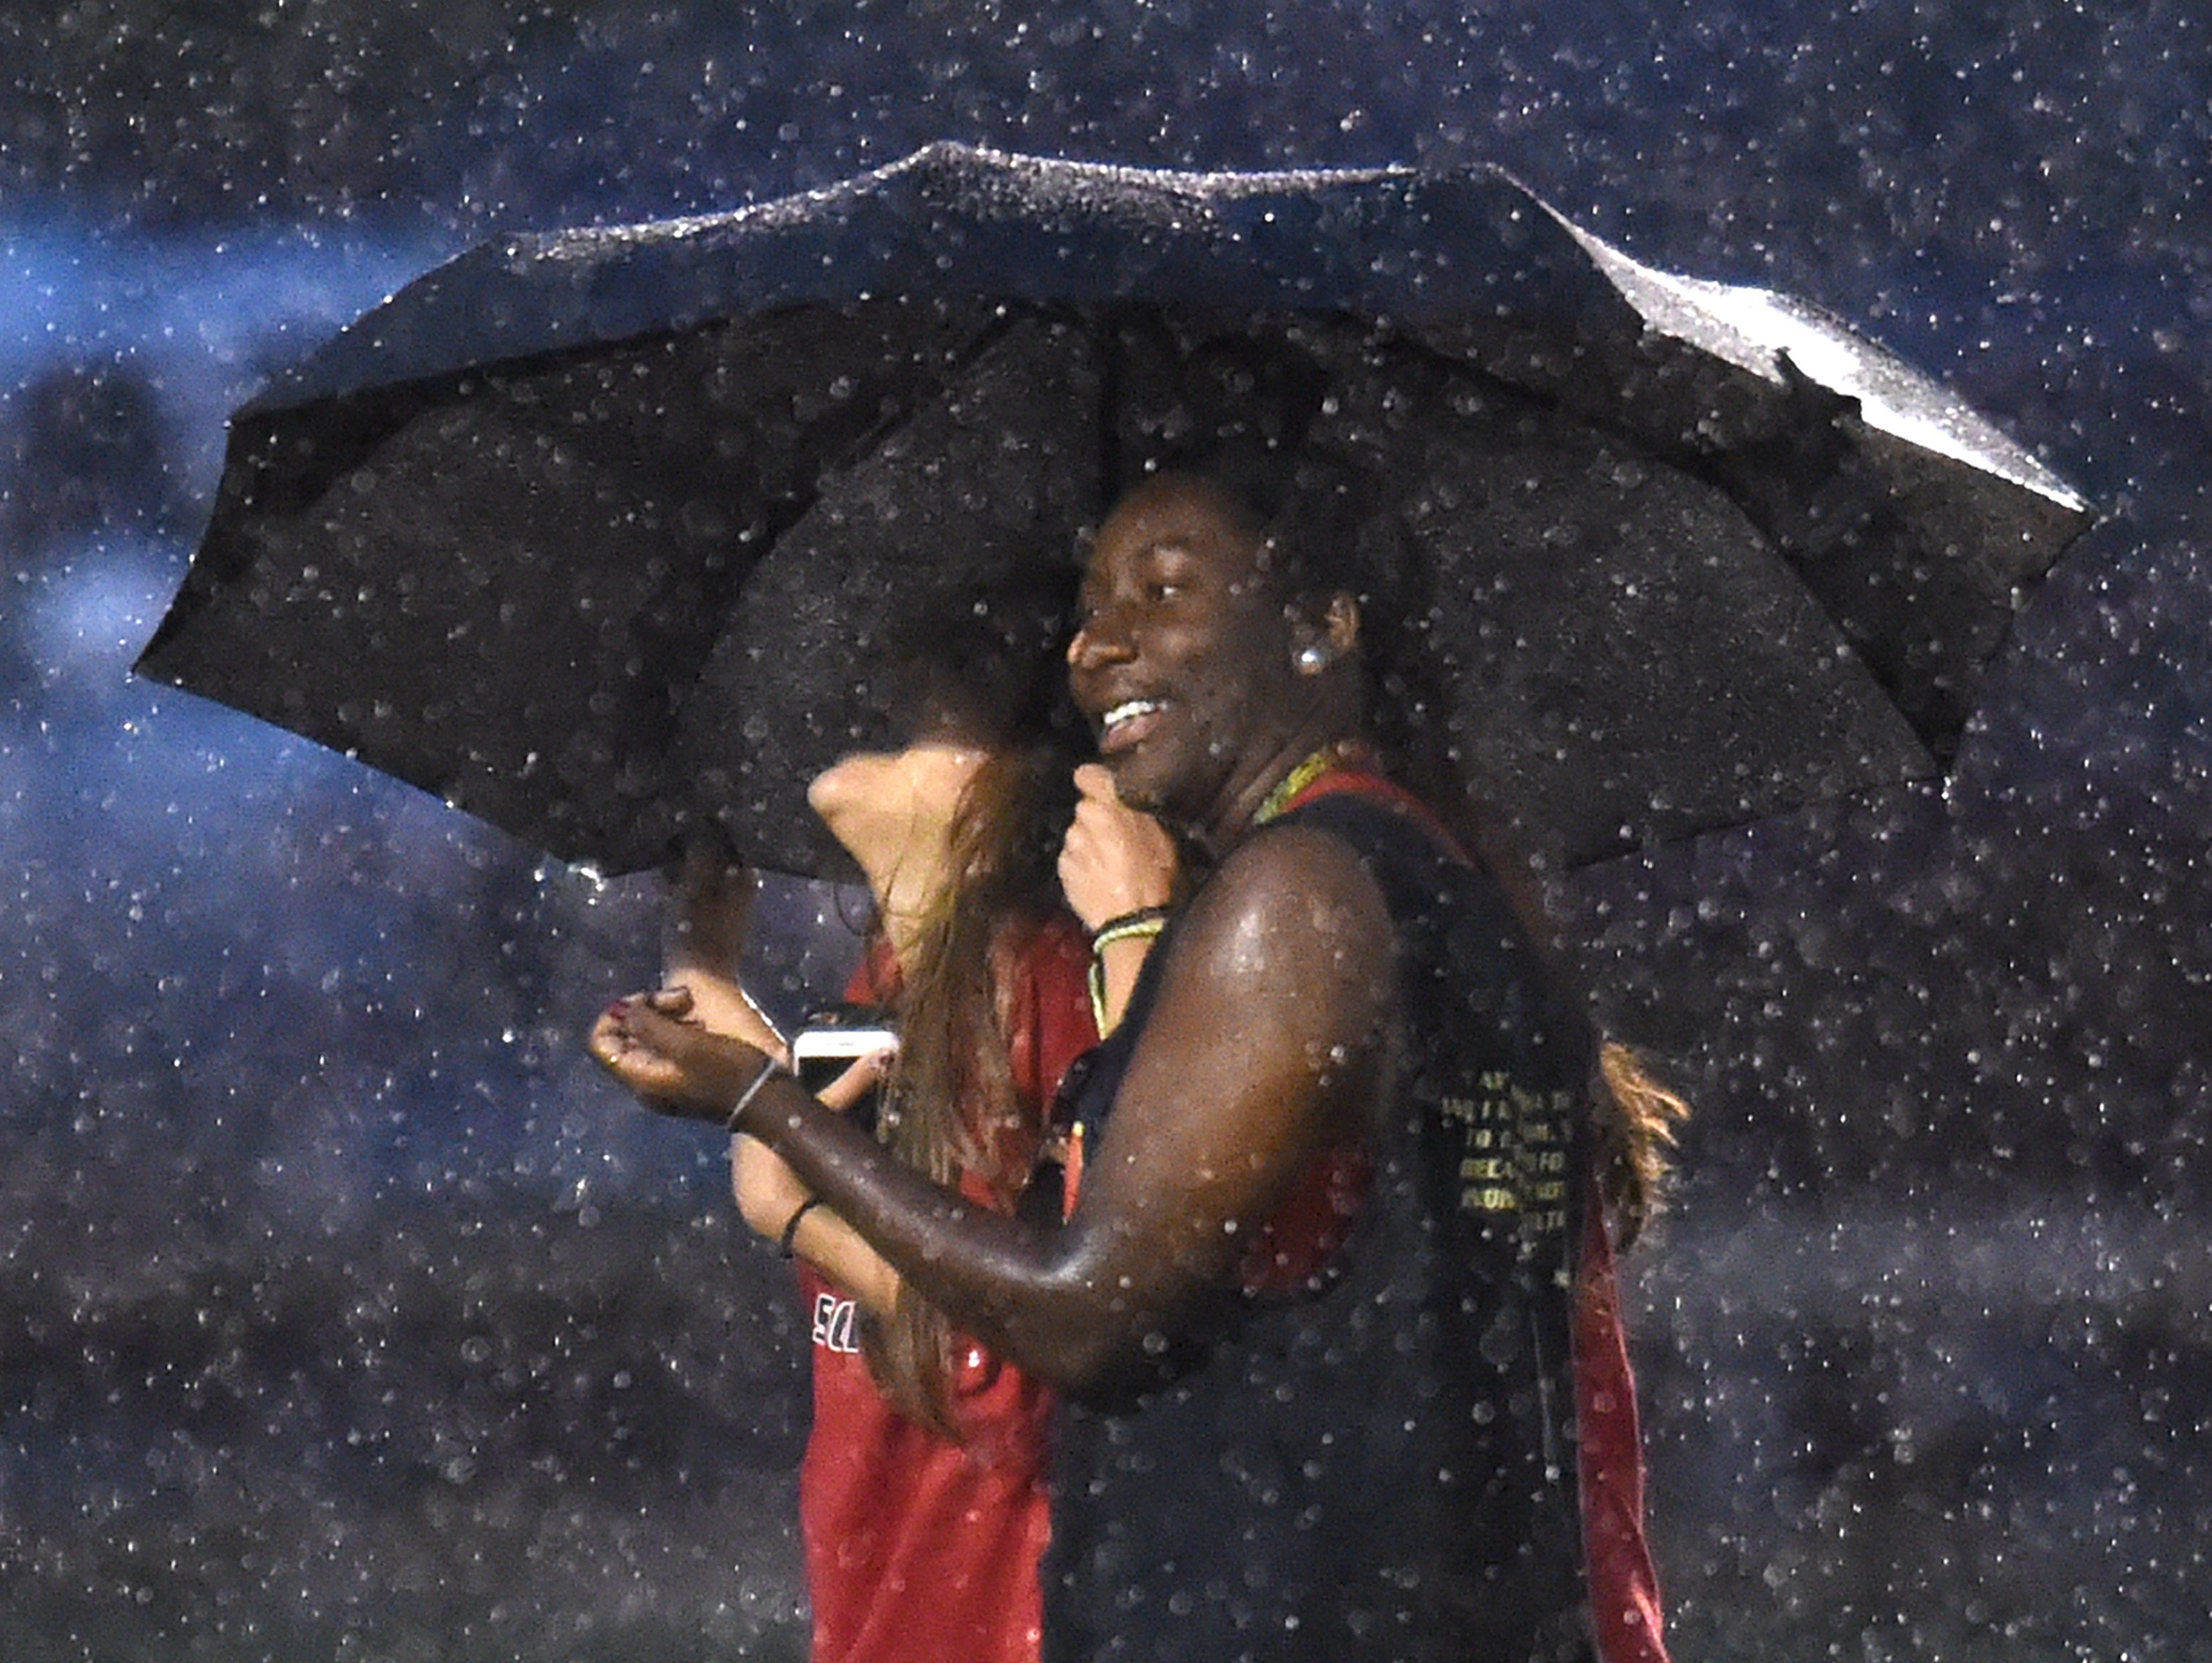 Spectators laugh while taking cover in a lightning delay at Richard Siegel Soccer Complex during Spring Fling Wednesday, May 25, 2016 in Murfreesboro, Tenn.